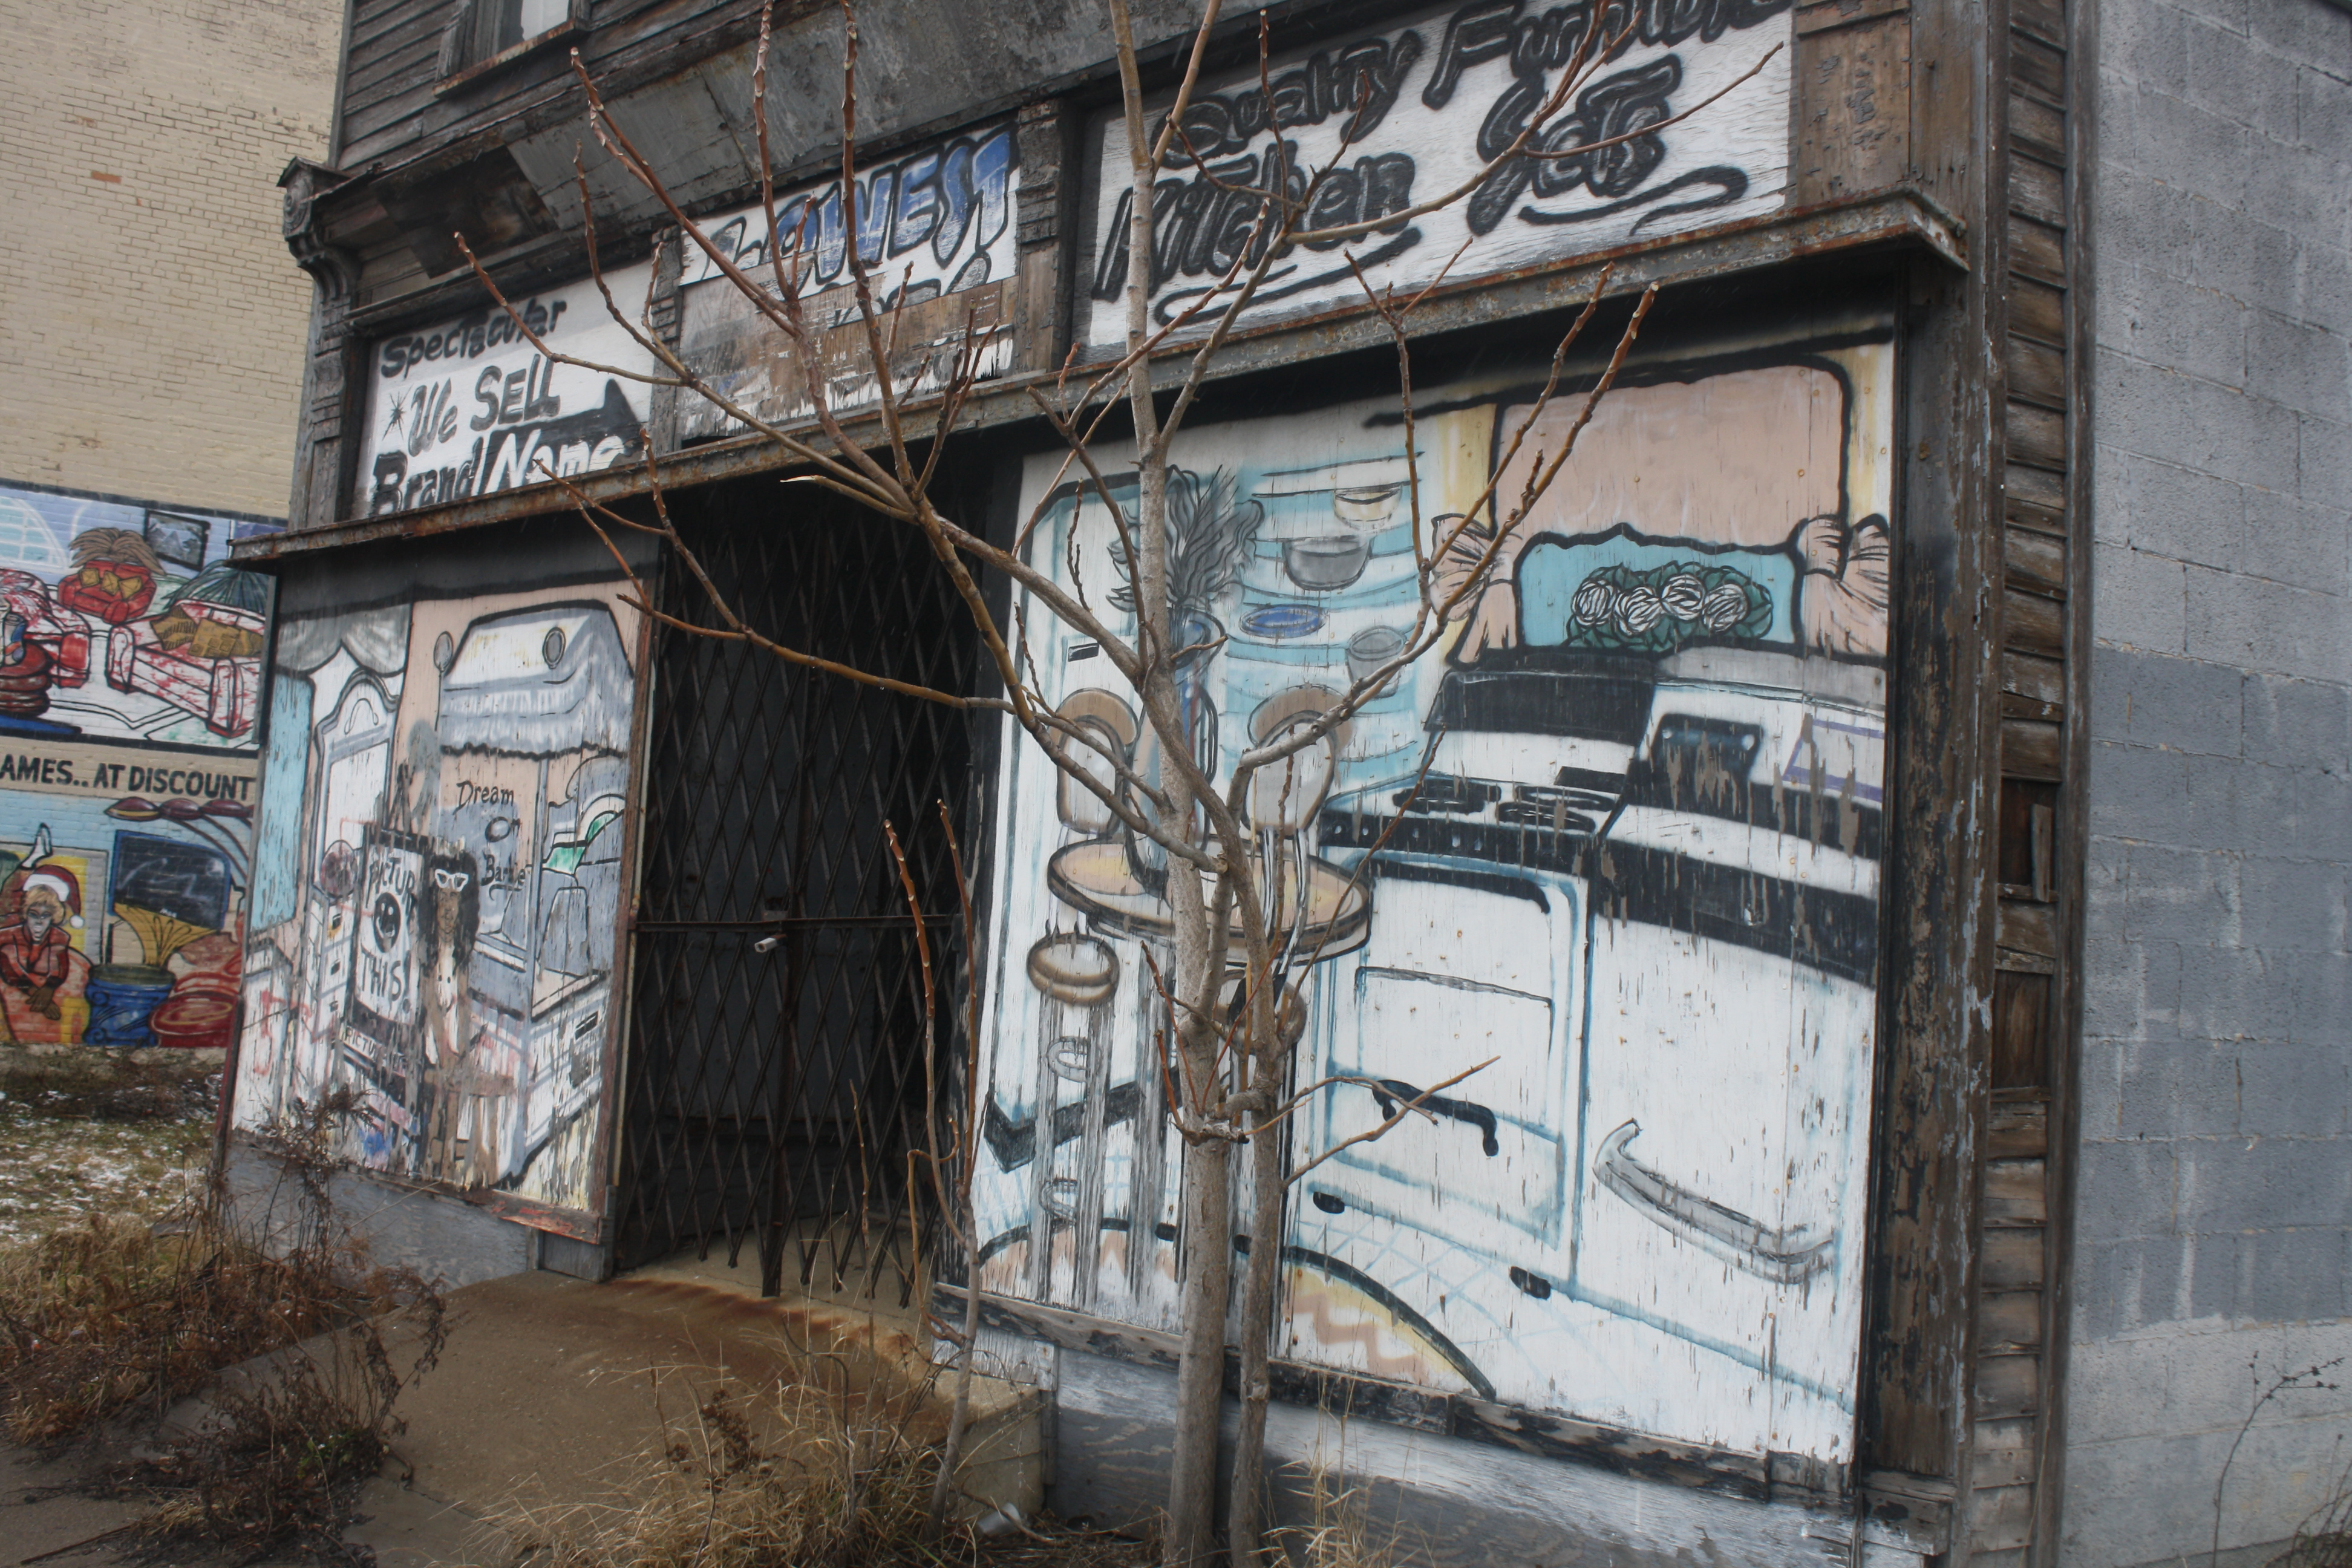 Grafitti add color to the decaying buildings on Buffalo's East side.